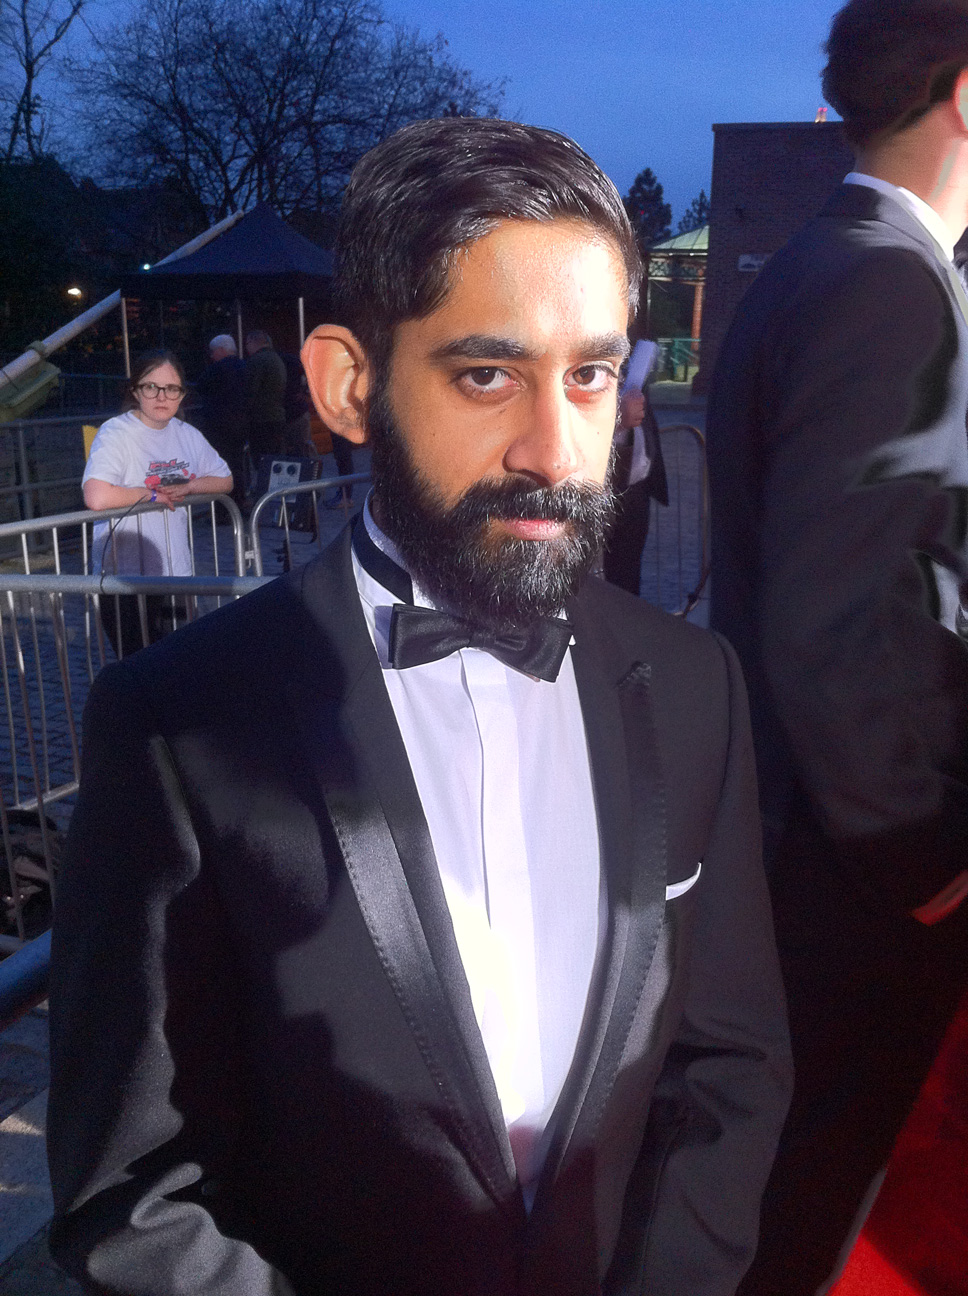 Manesh striking a pose on the red carpet on BAFTA night